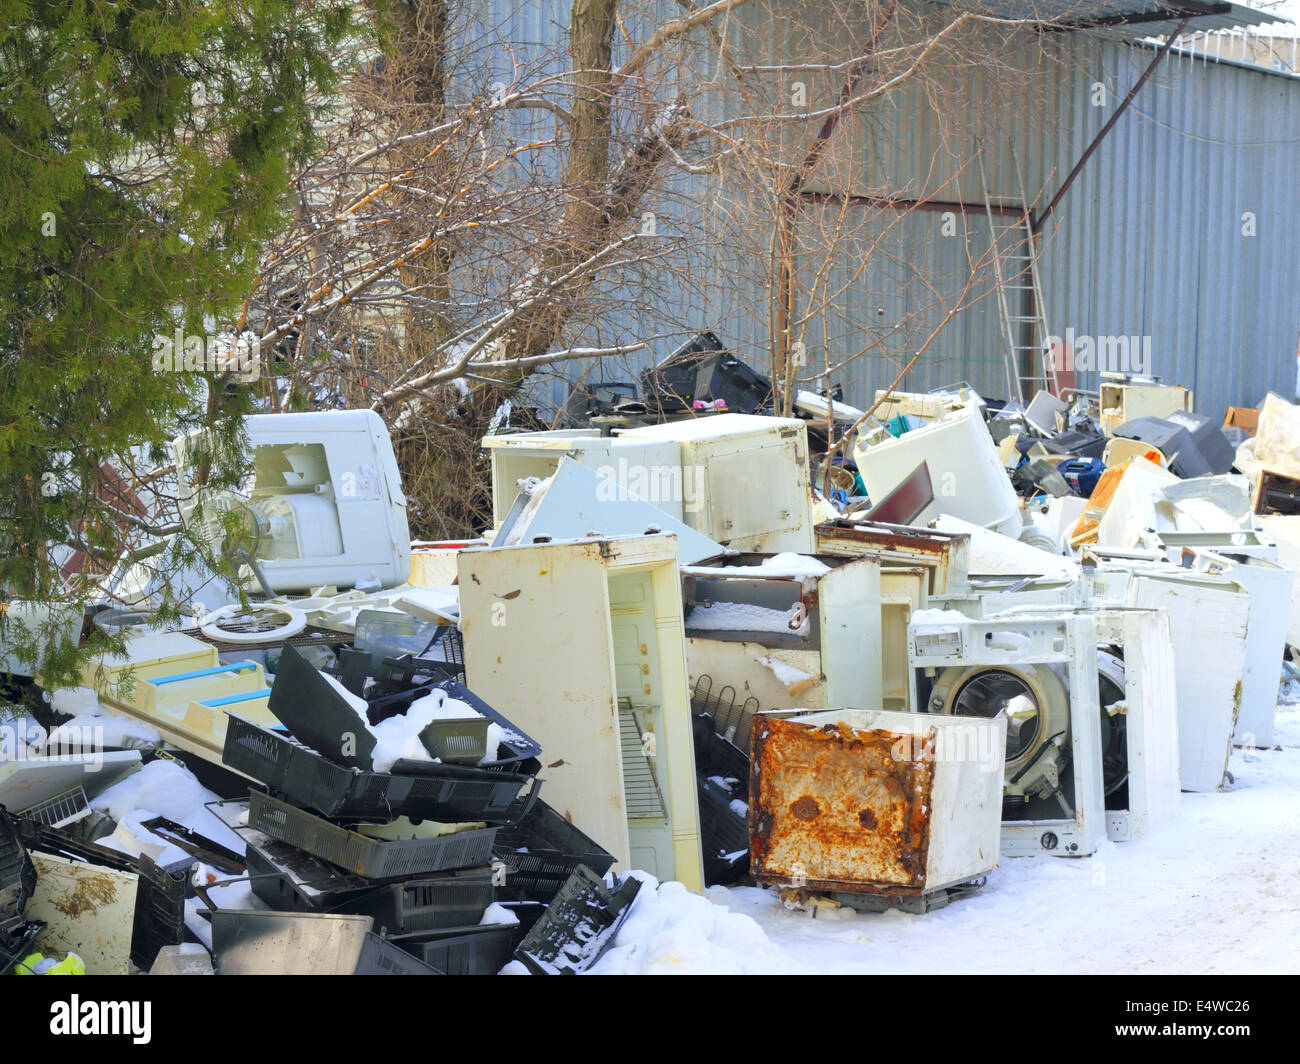 Dumping of household appliances - Stock Image